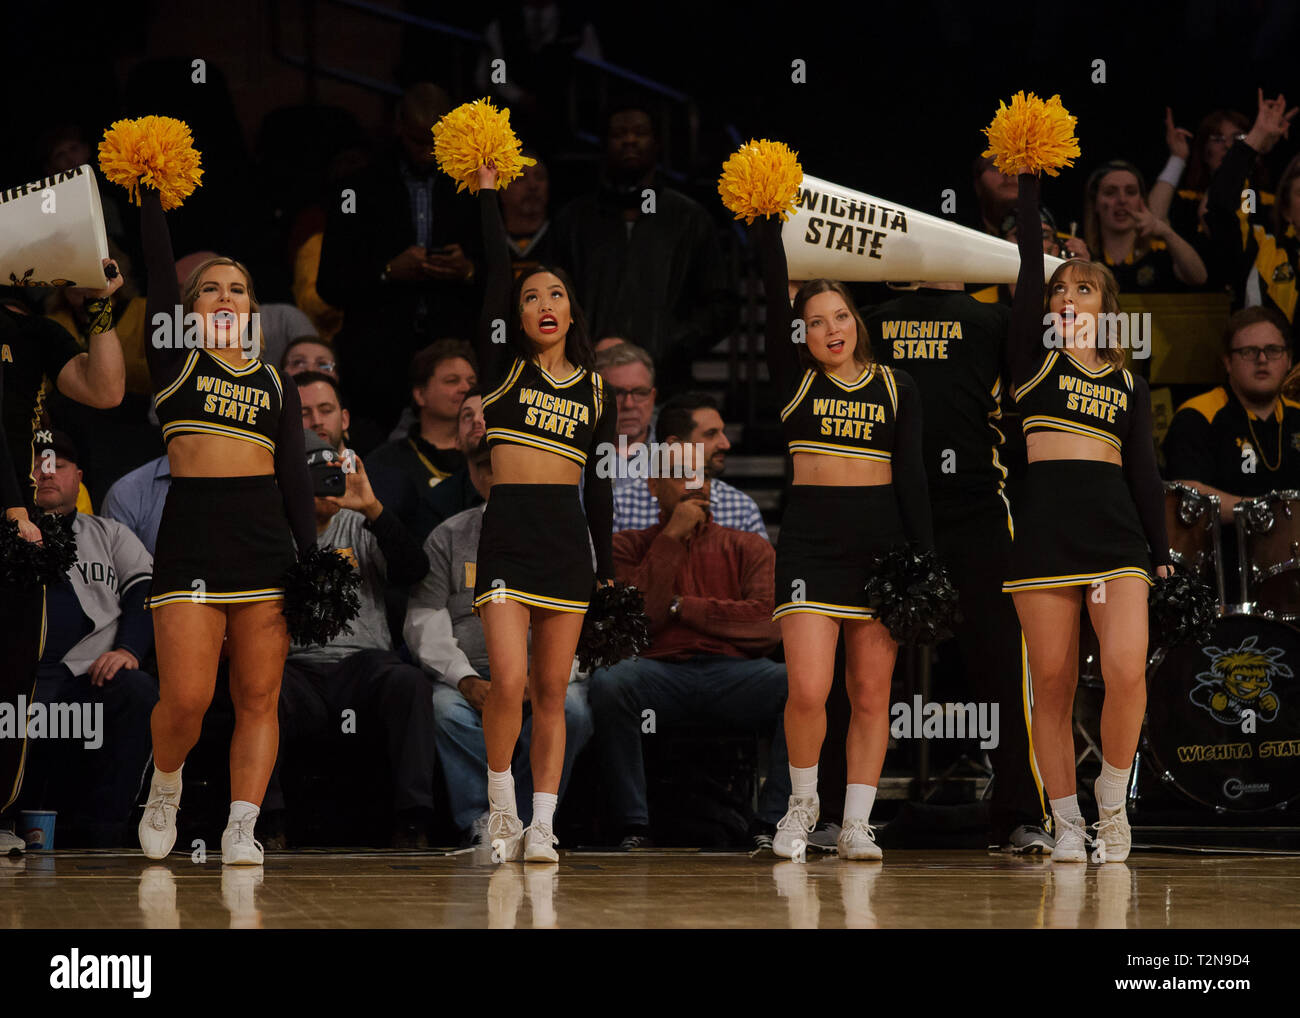 April 02, 2019: The Wichita State Shockers cheerleaders root on their team at the semi-final of the NIT Tournament game between The Wichita State Shockers and The Lipscomb Bisons at Madison Square Garden, New York, New York. The Lipscomb Bisons defeat The Wichita State Shockers 71-64. Mandatory credit: Kostas Lymperopoulos/CSM Stock Photo